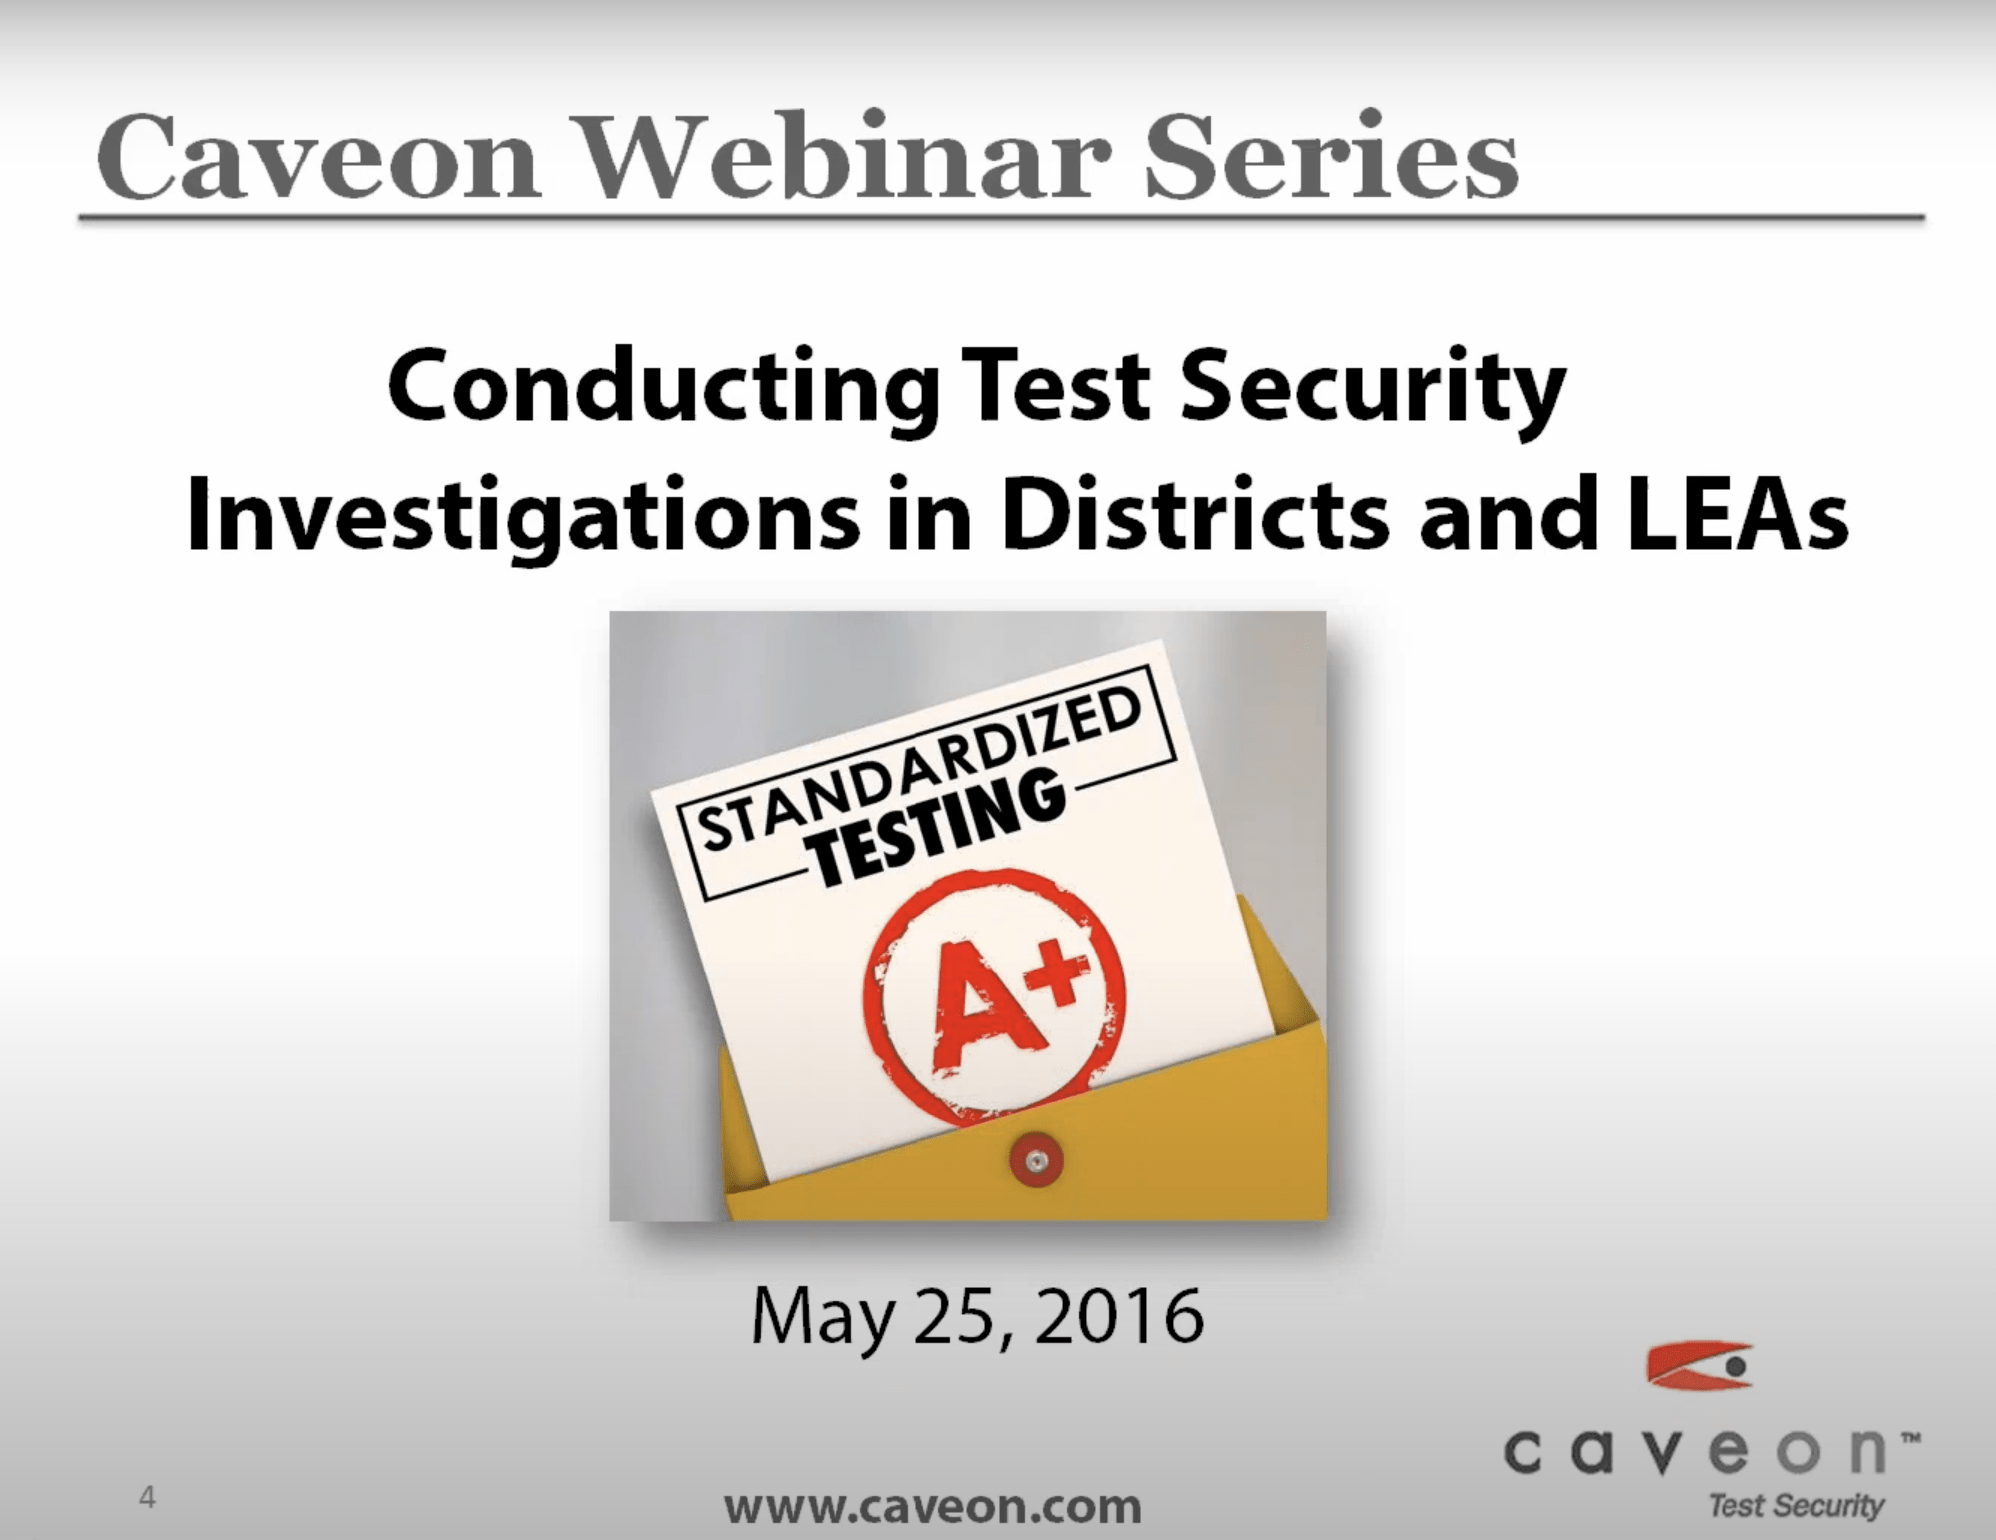 Conducting Test Security Investigations in Districts and LEAs